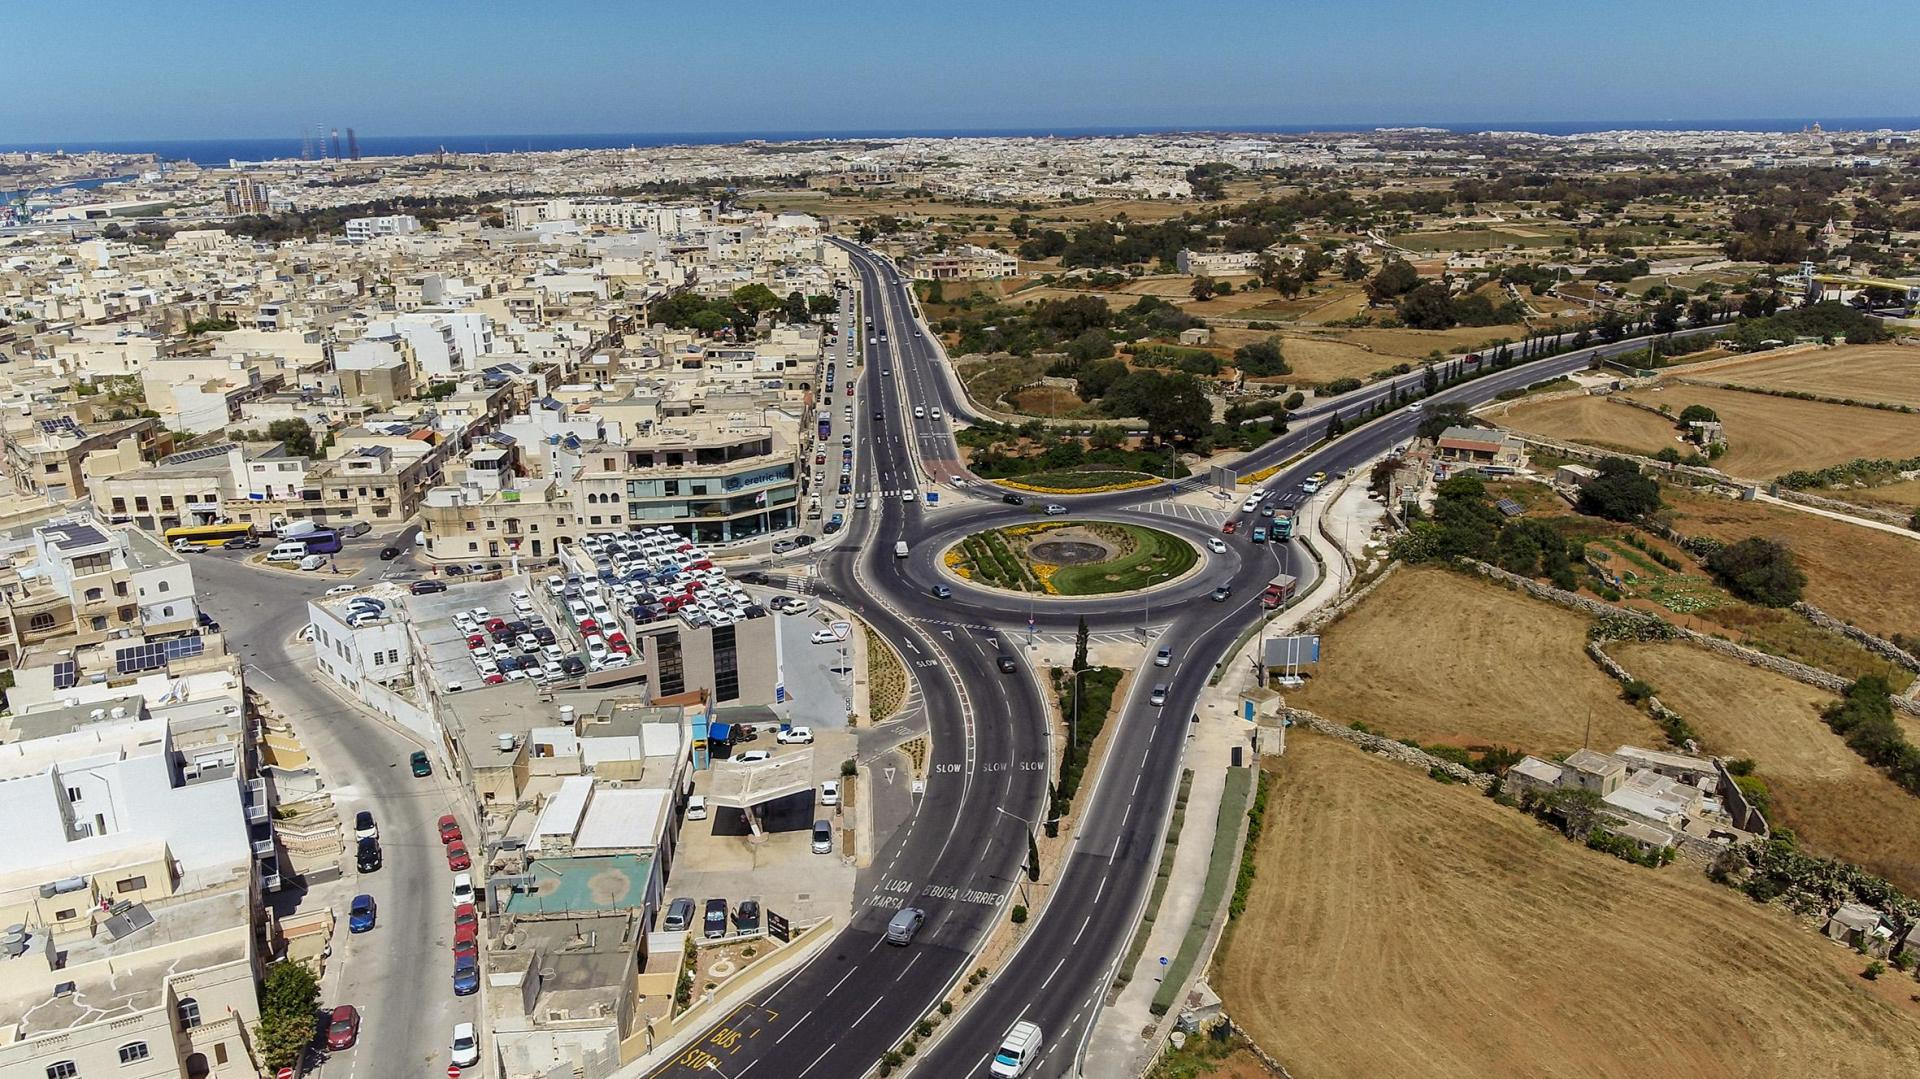 The Luqa roundabout in its current form.